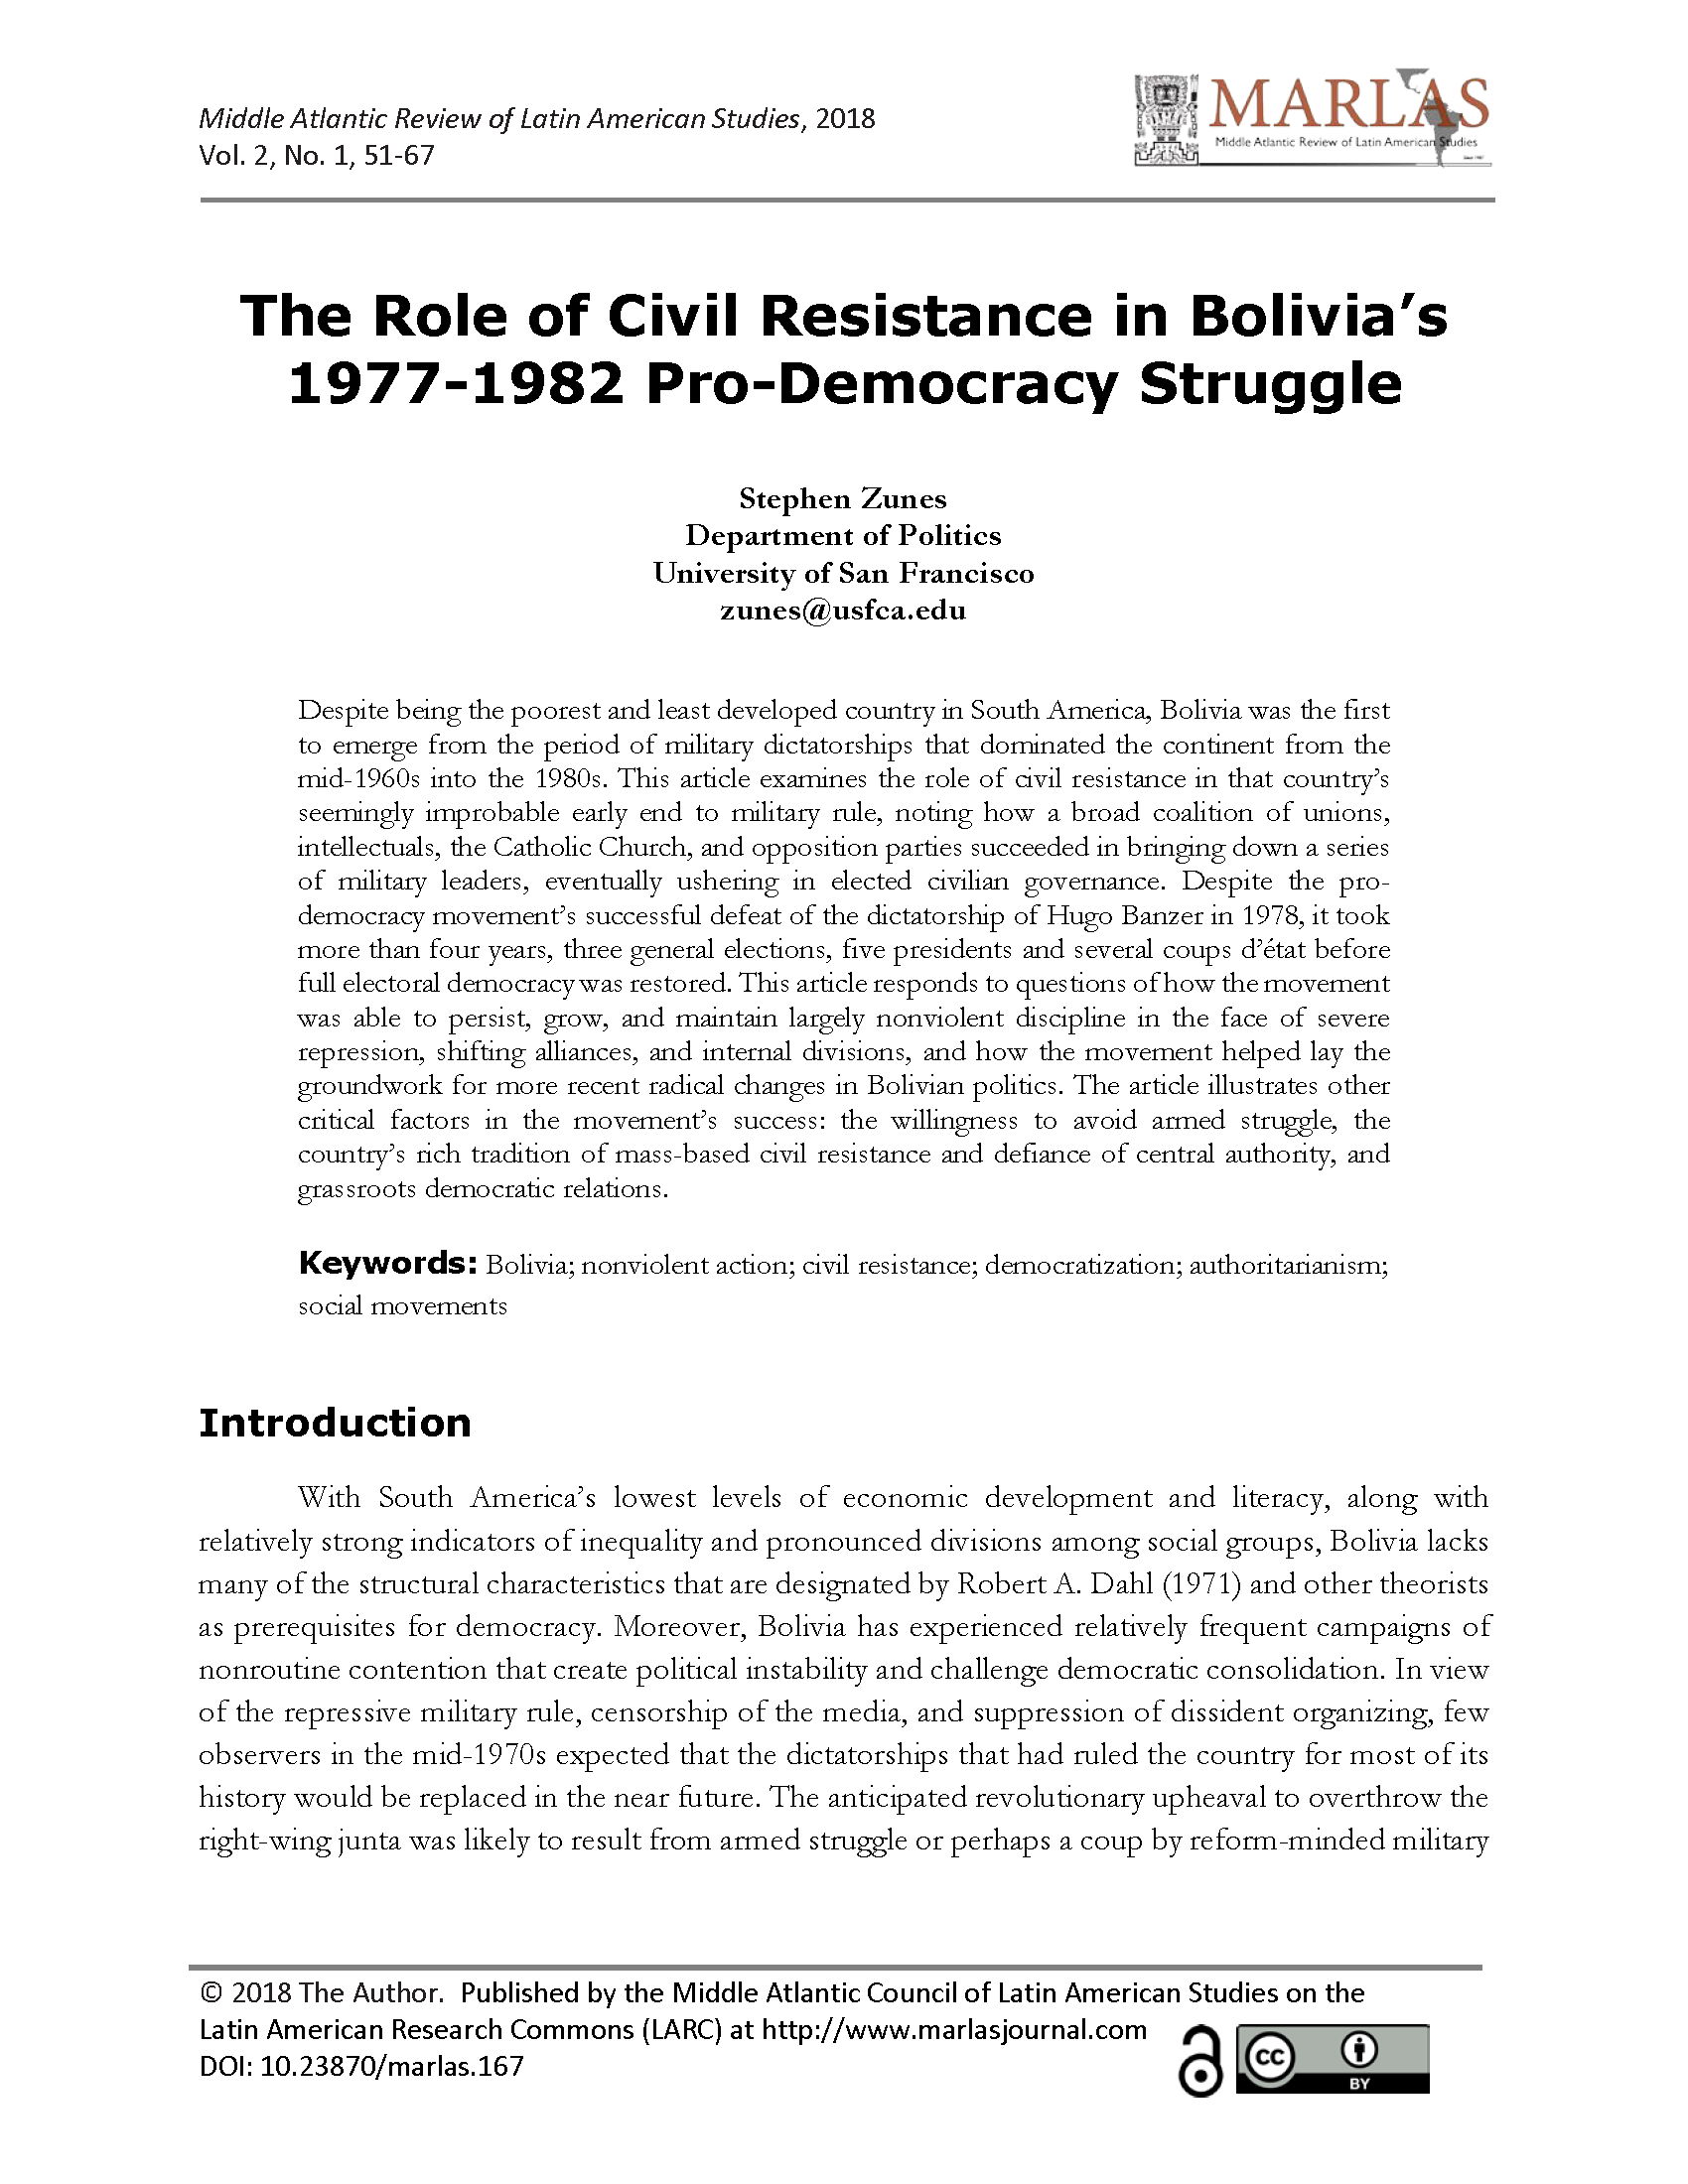 The Role of Civil Resistance in Bolivia's 1977-1982 Pro-Democracy Struggle